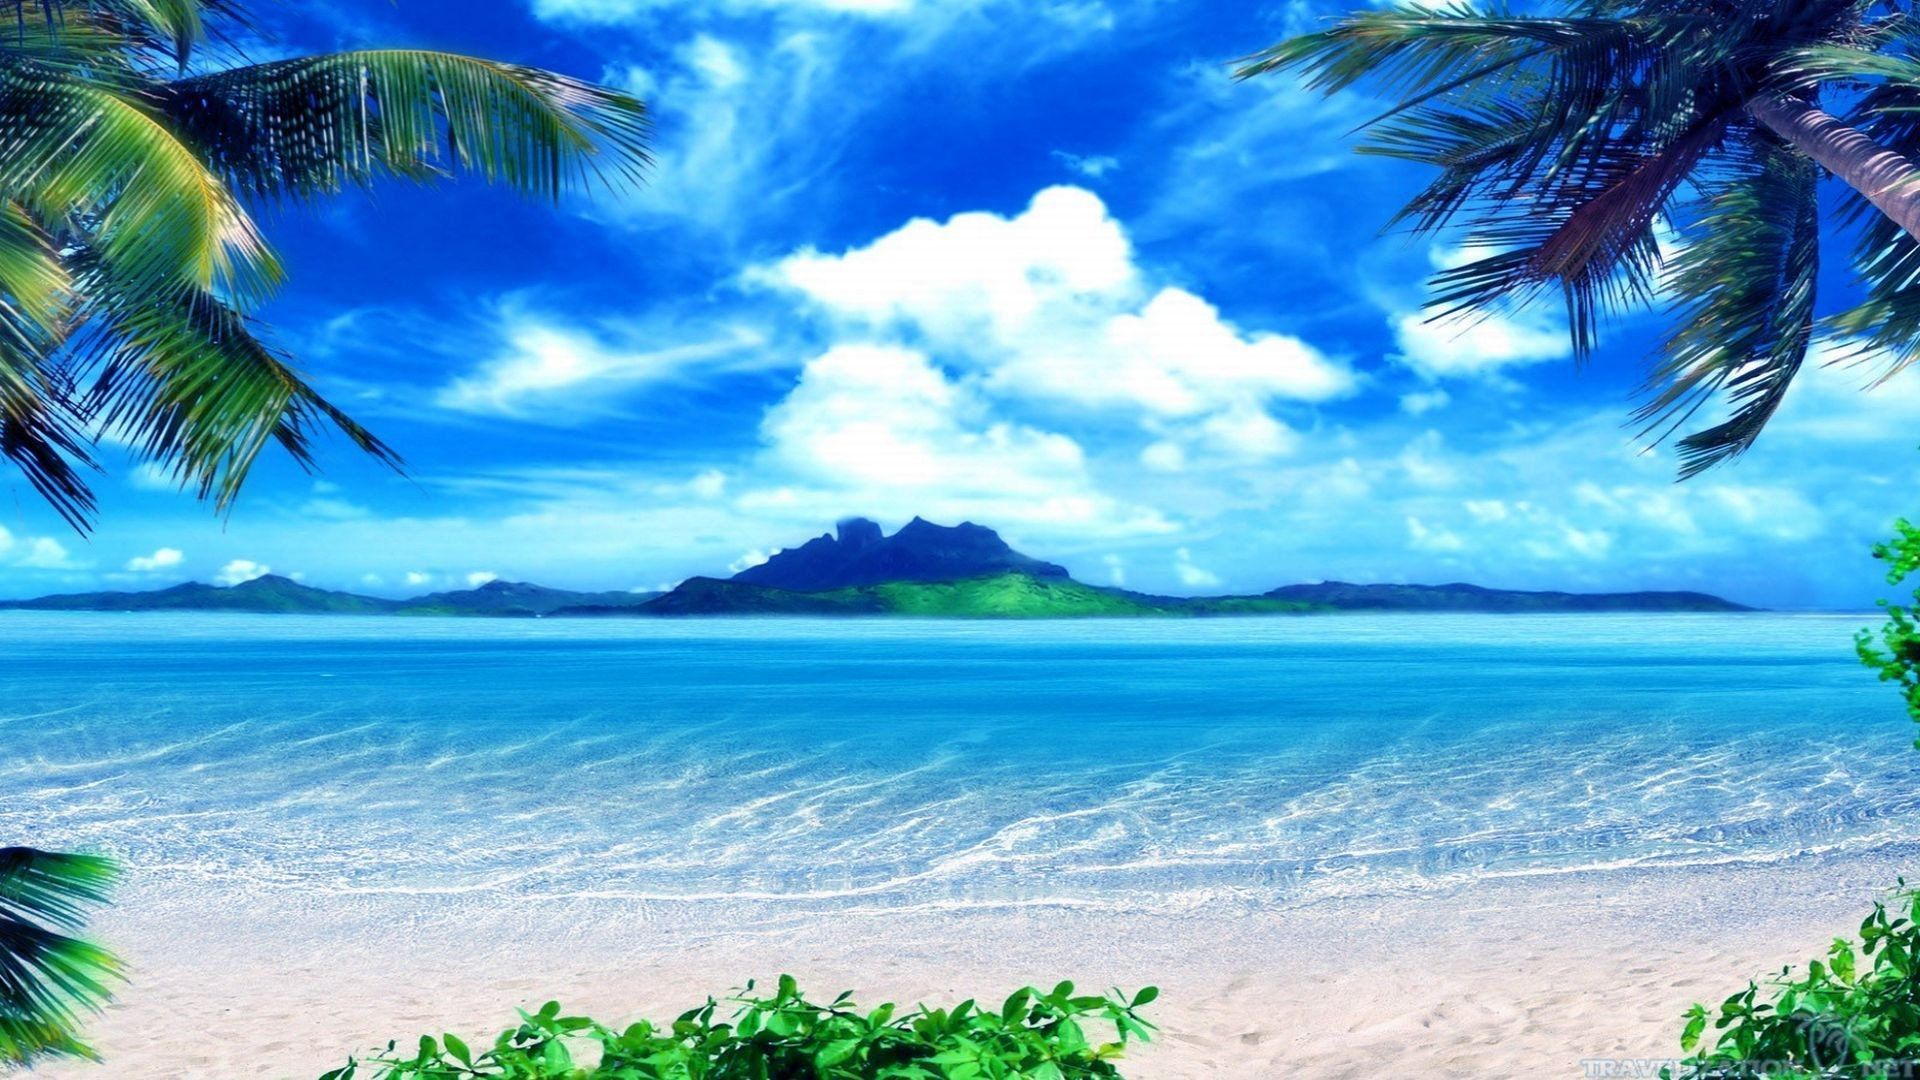 1920x1080 Beach Scene Wallpapers Tropical Themes 1920A 1080